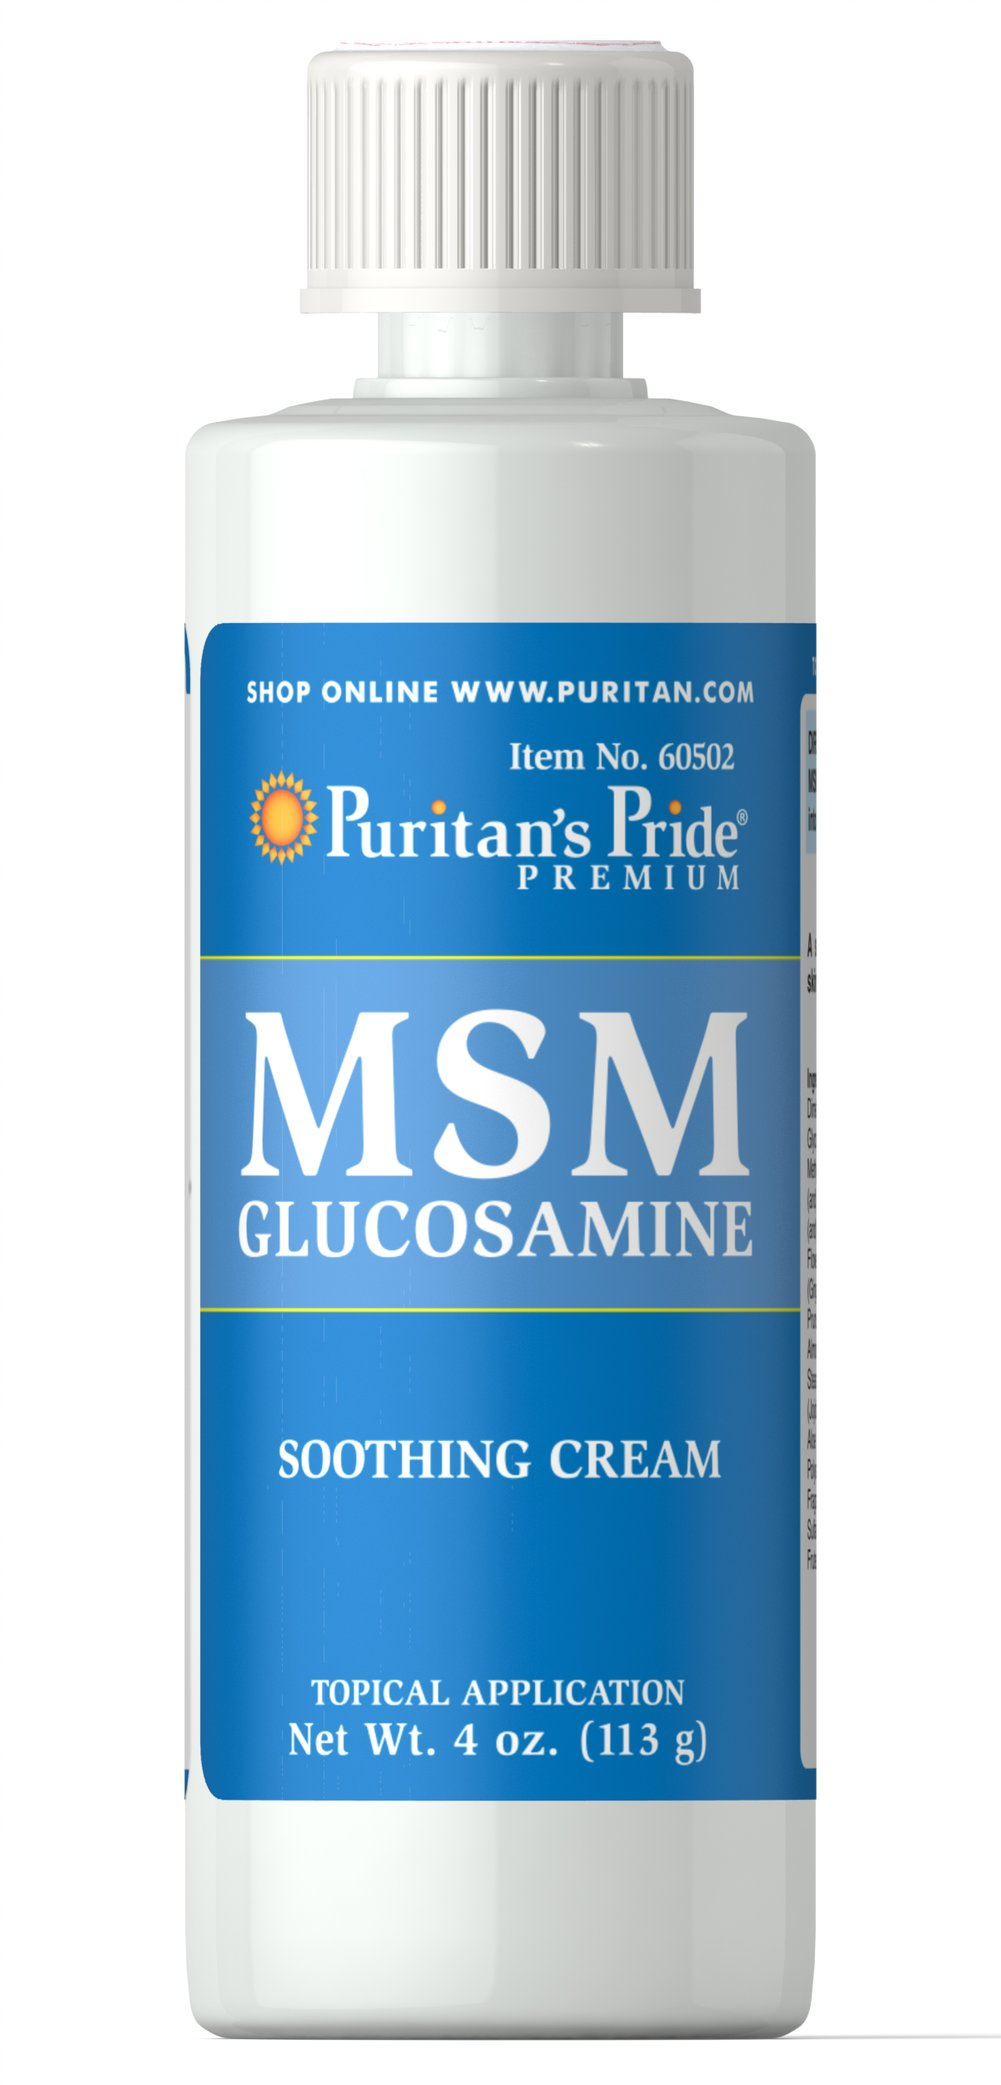 MSM Glucosamine Cream <p>Gently massage <b>MSM with Glucosamine Cream</b> into the skin as required, or follow the advice of your health care professional.</p> 4 oz Cream  $12.99